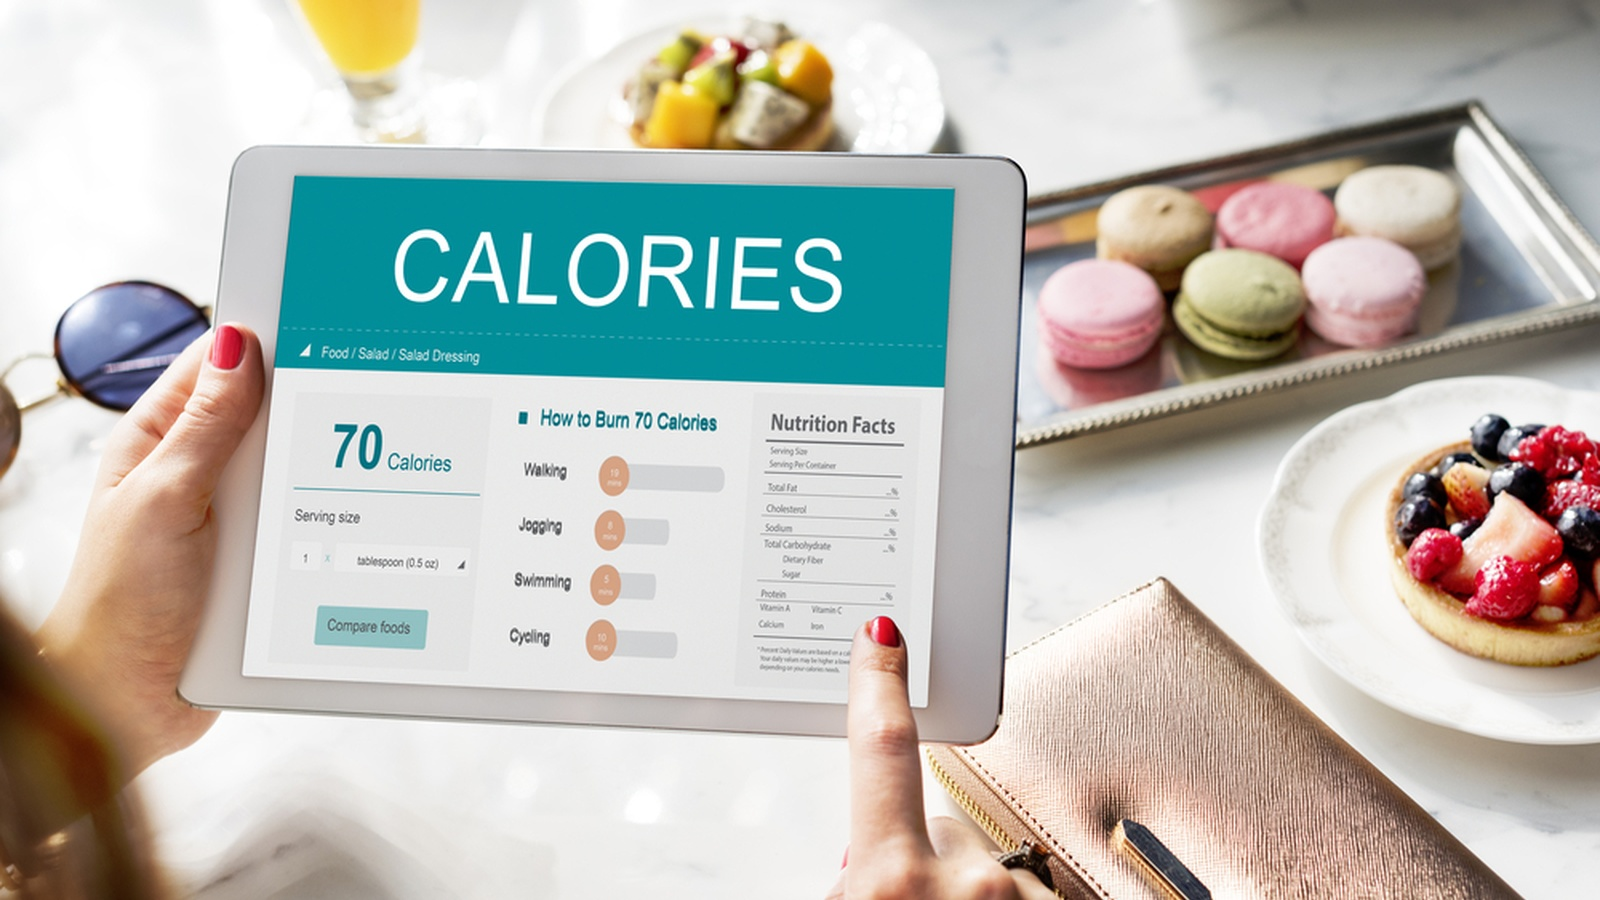 Calorie Counting Doesn't Add Up When it Comes to Healthy Weight Loss